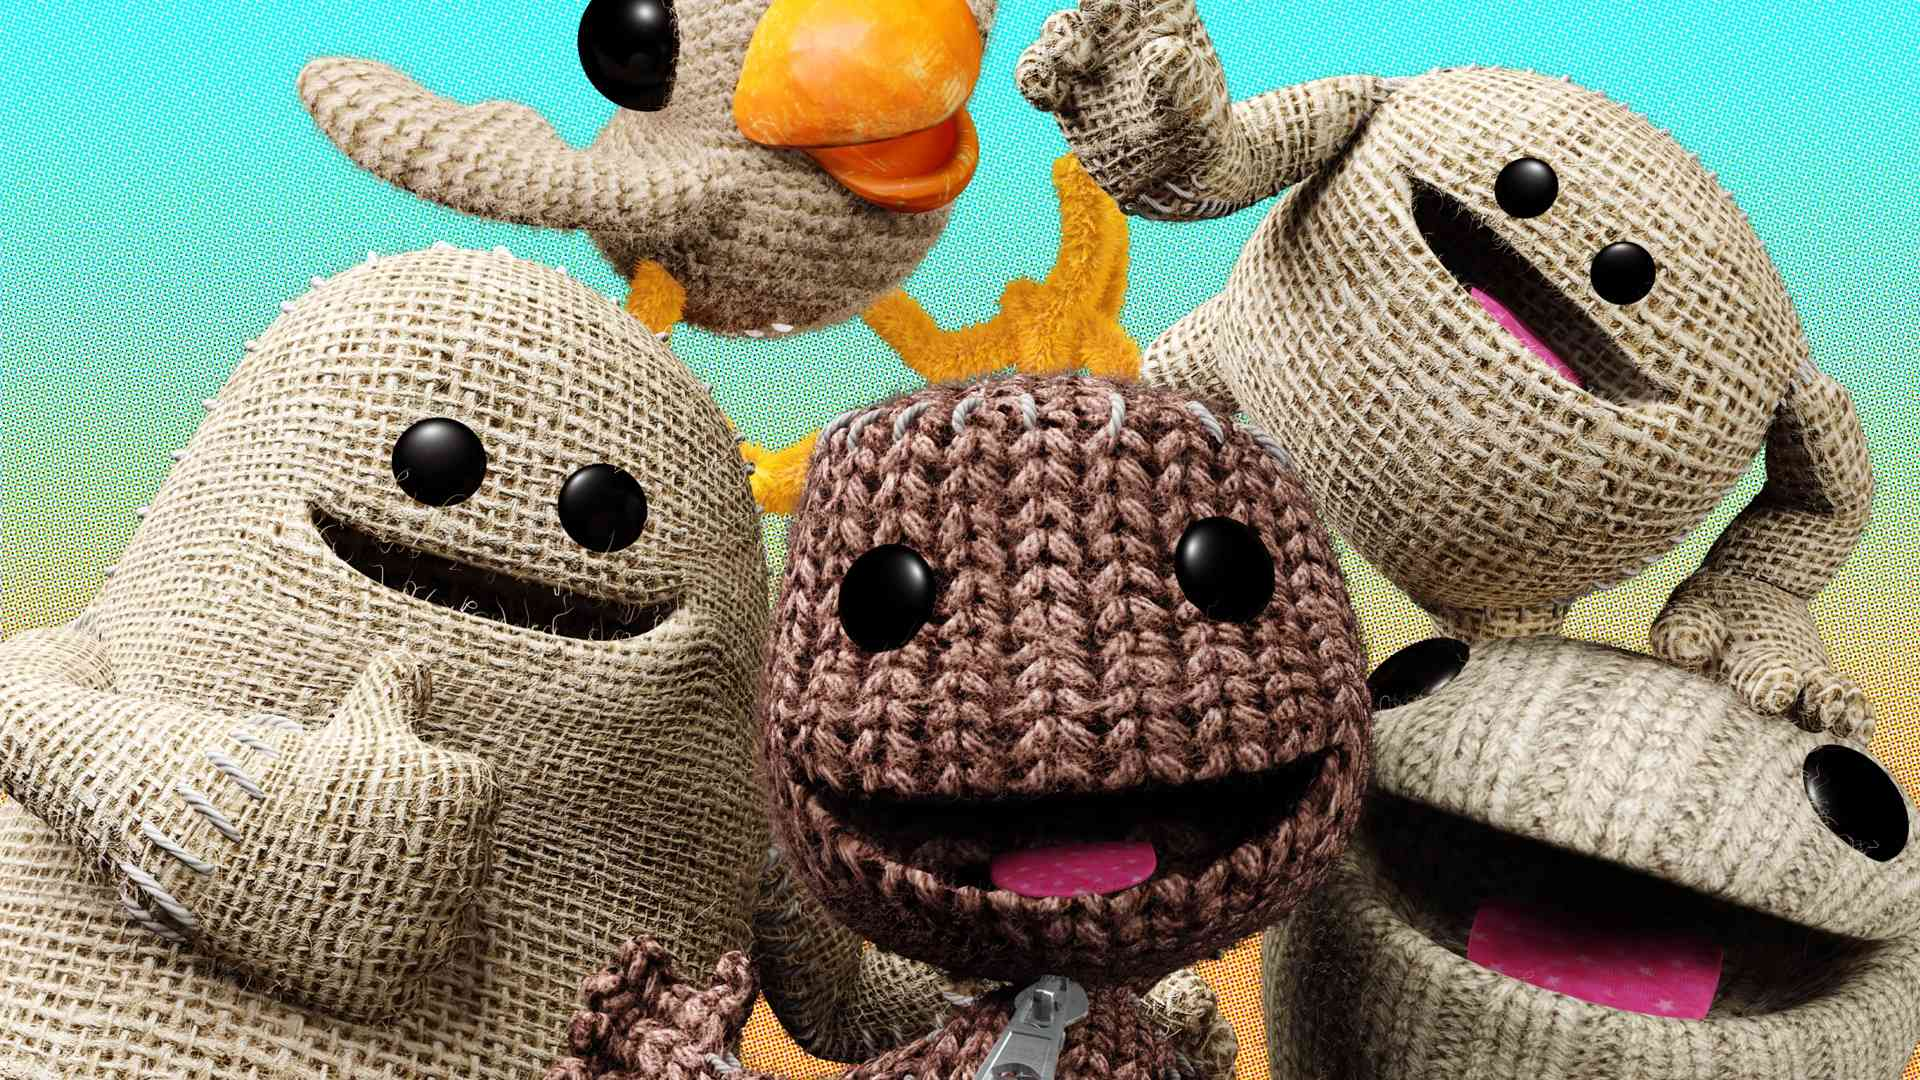 How To Play Lbp Online